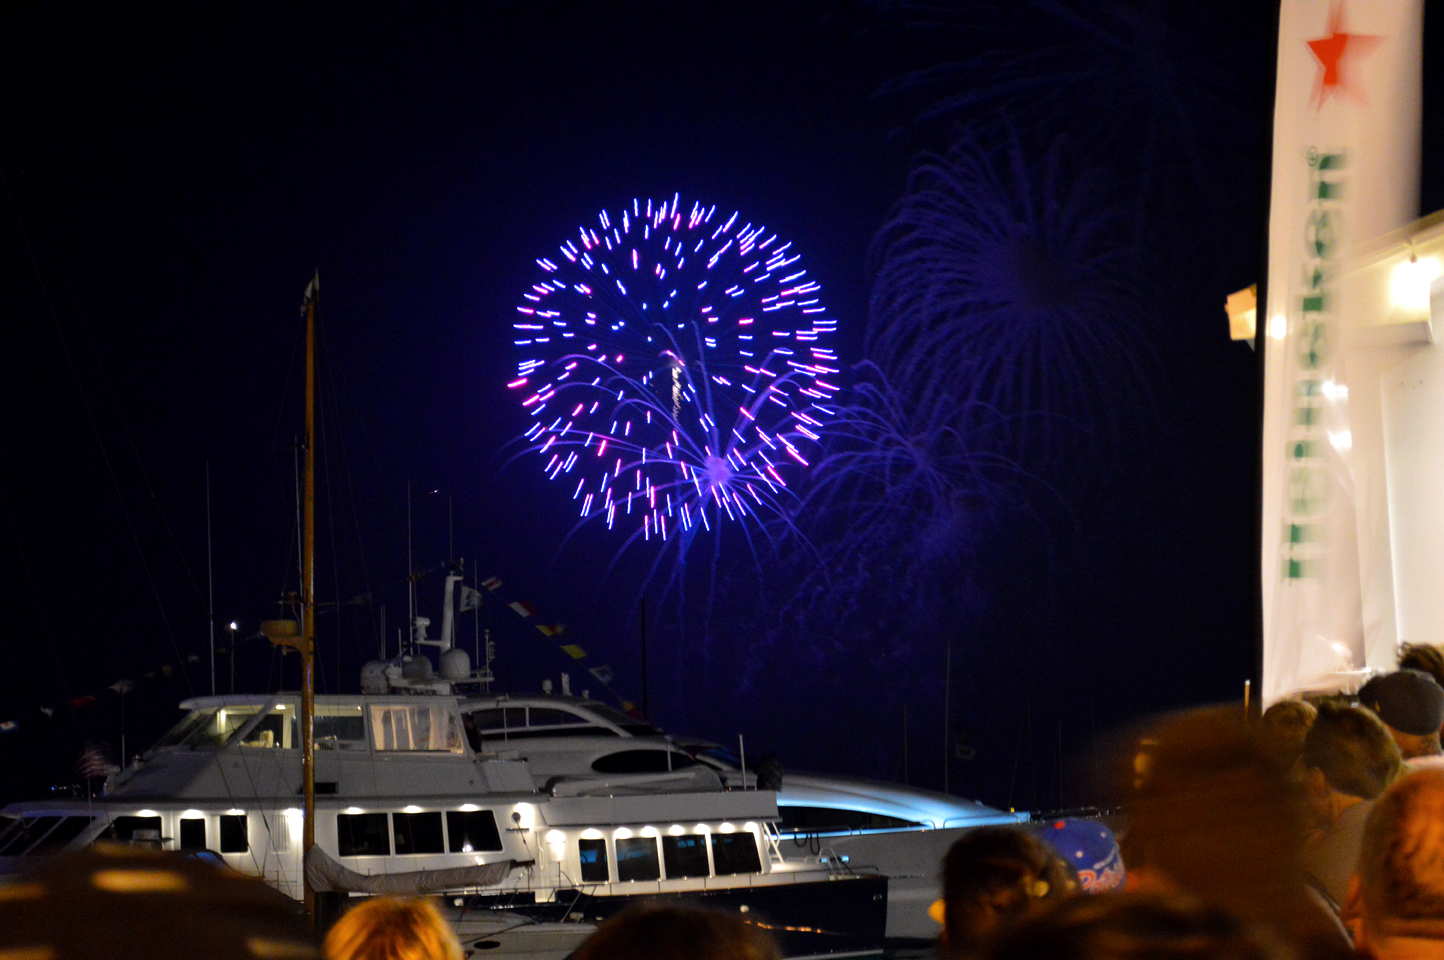 ROCKET'S RED GLARE OVER NEWPORT HARBOR - live. travel. adventure. bless. | Bright purple firework exploding over the yachts down by Bowen's Wharf in Newport Harbor. Happy 4th of July!